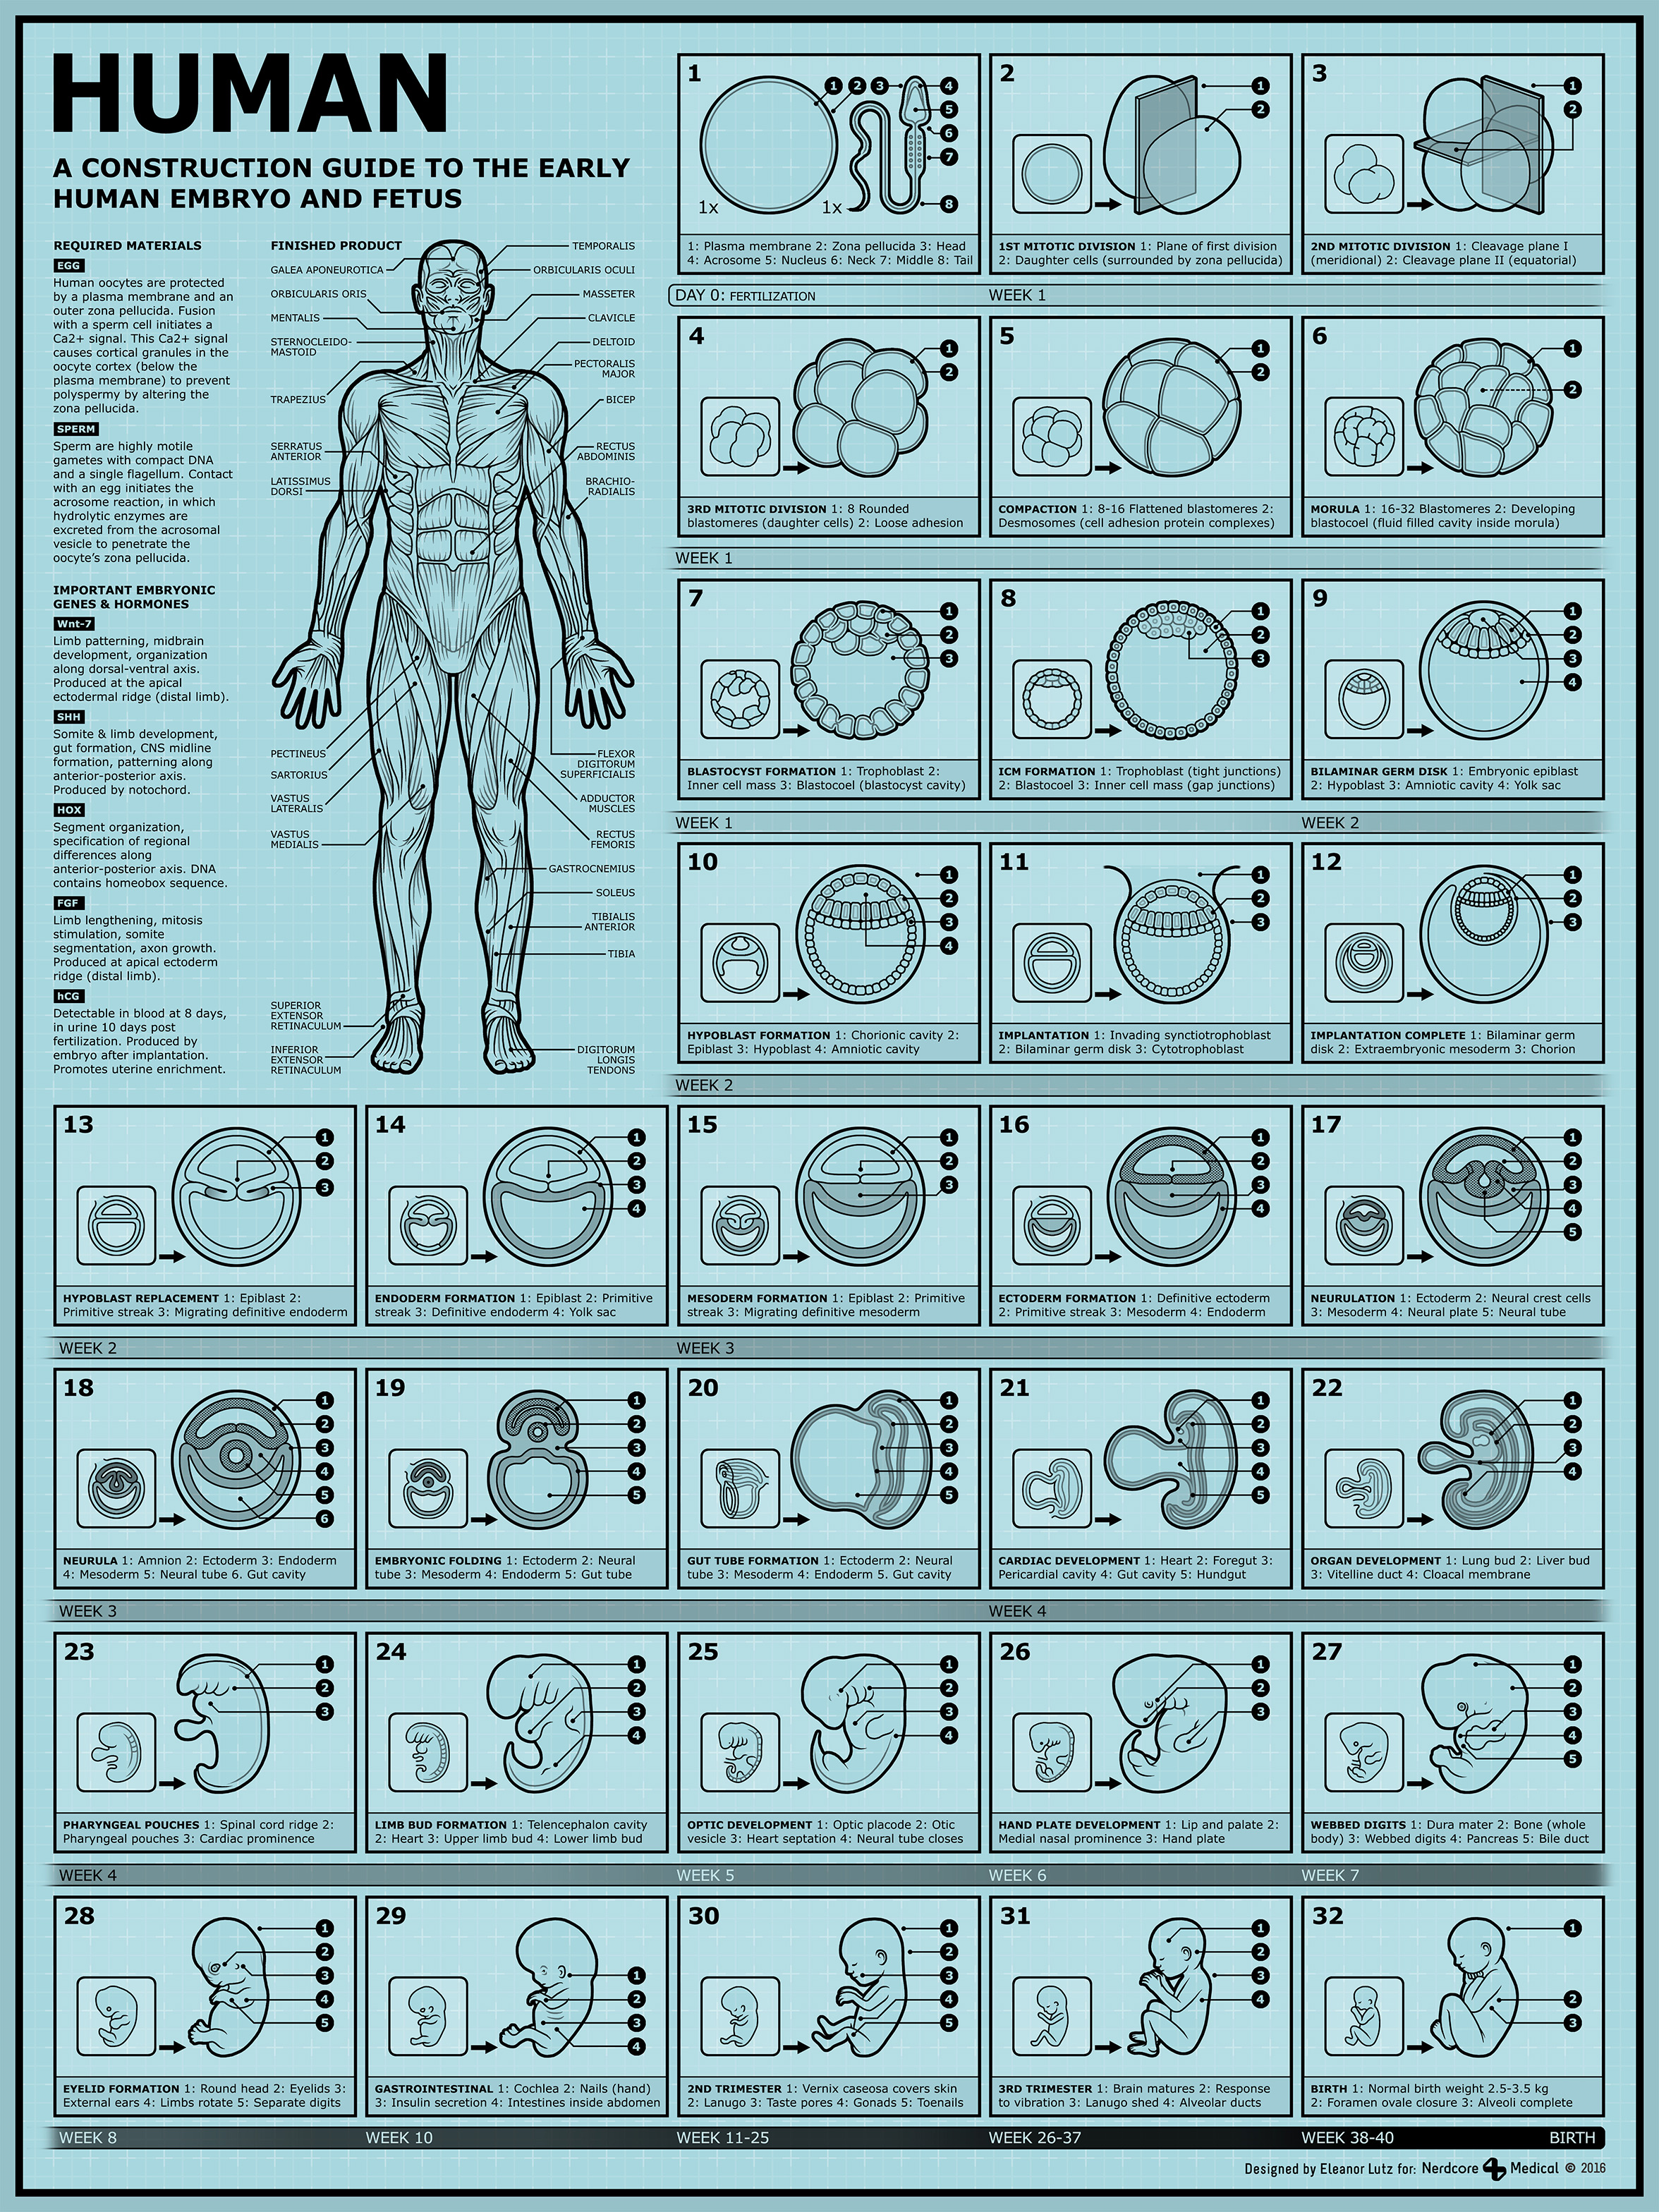 Human embryo development